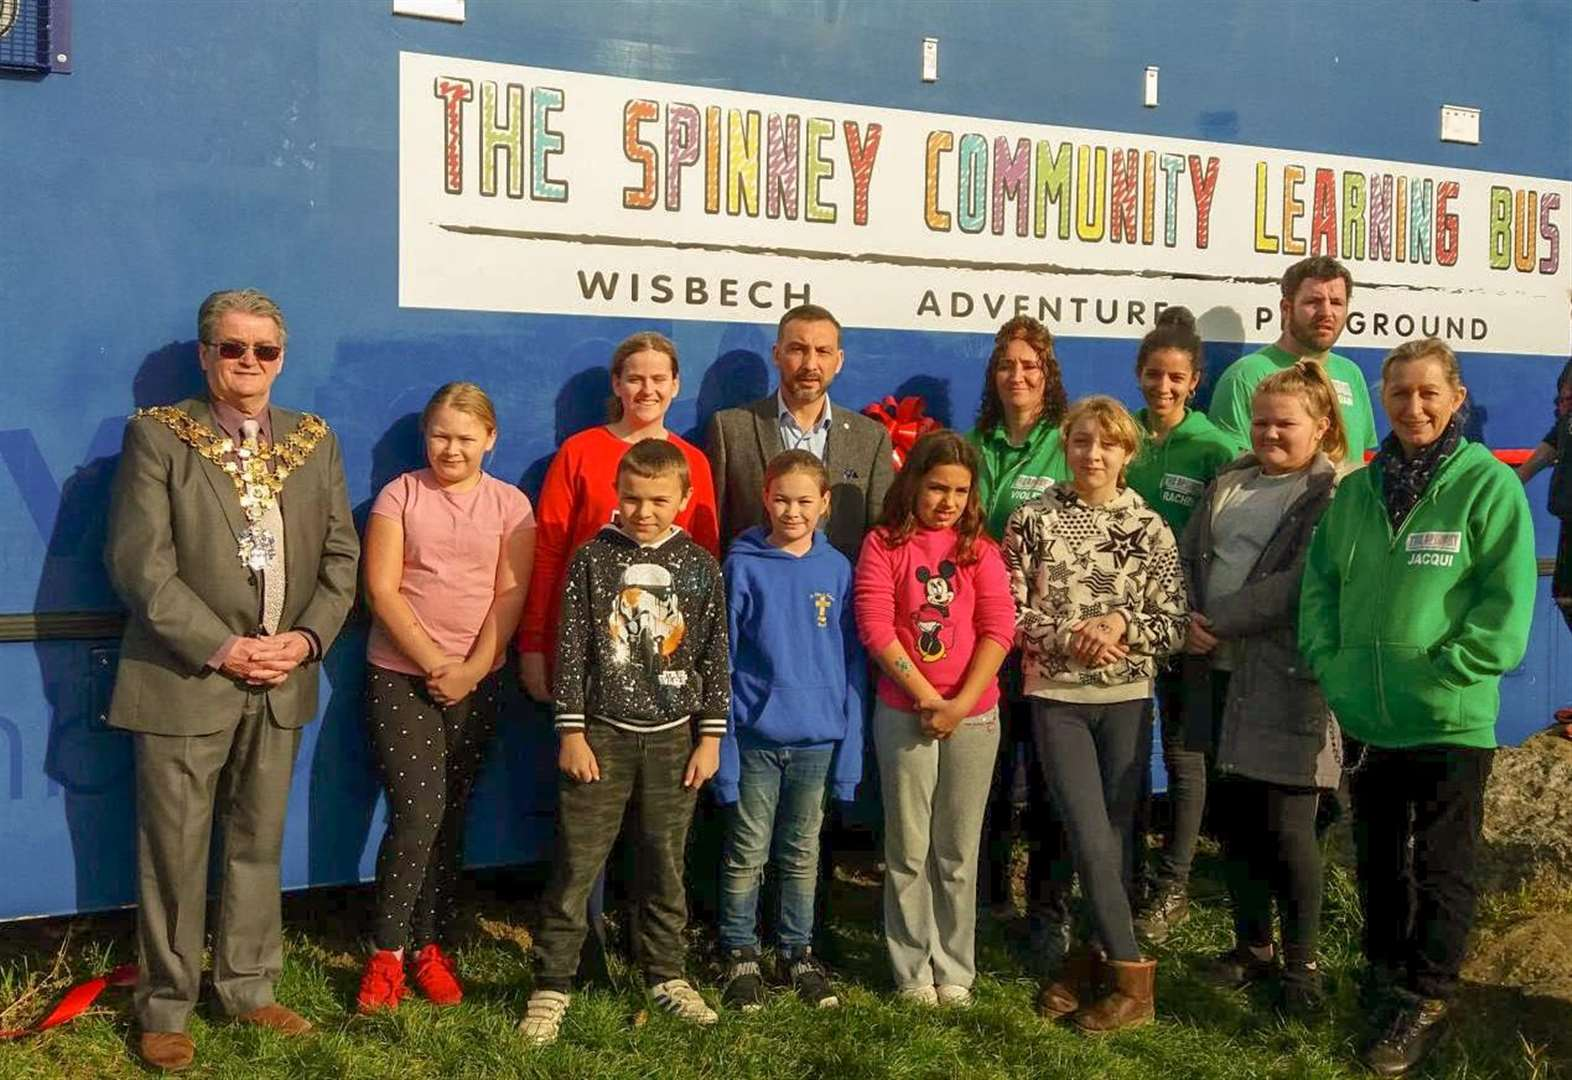 Learning Bus is officially launched at Wisbech playground